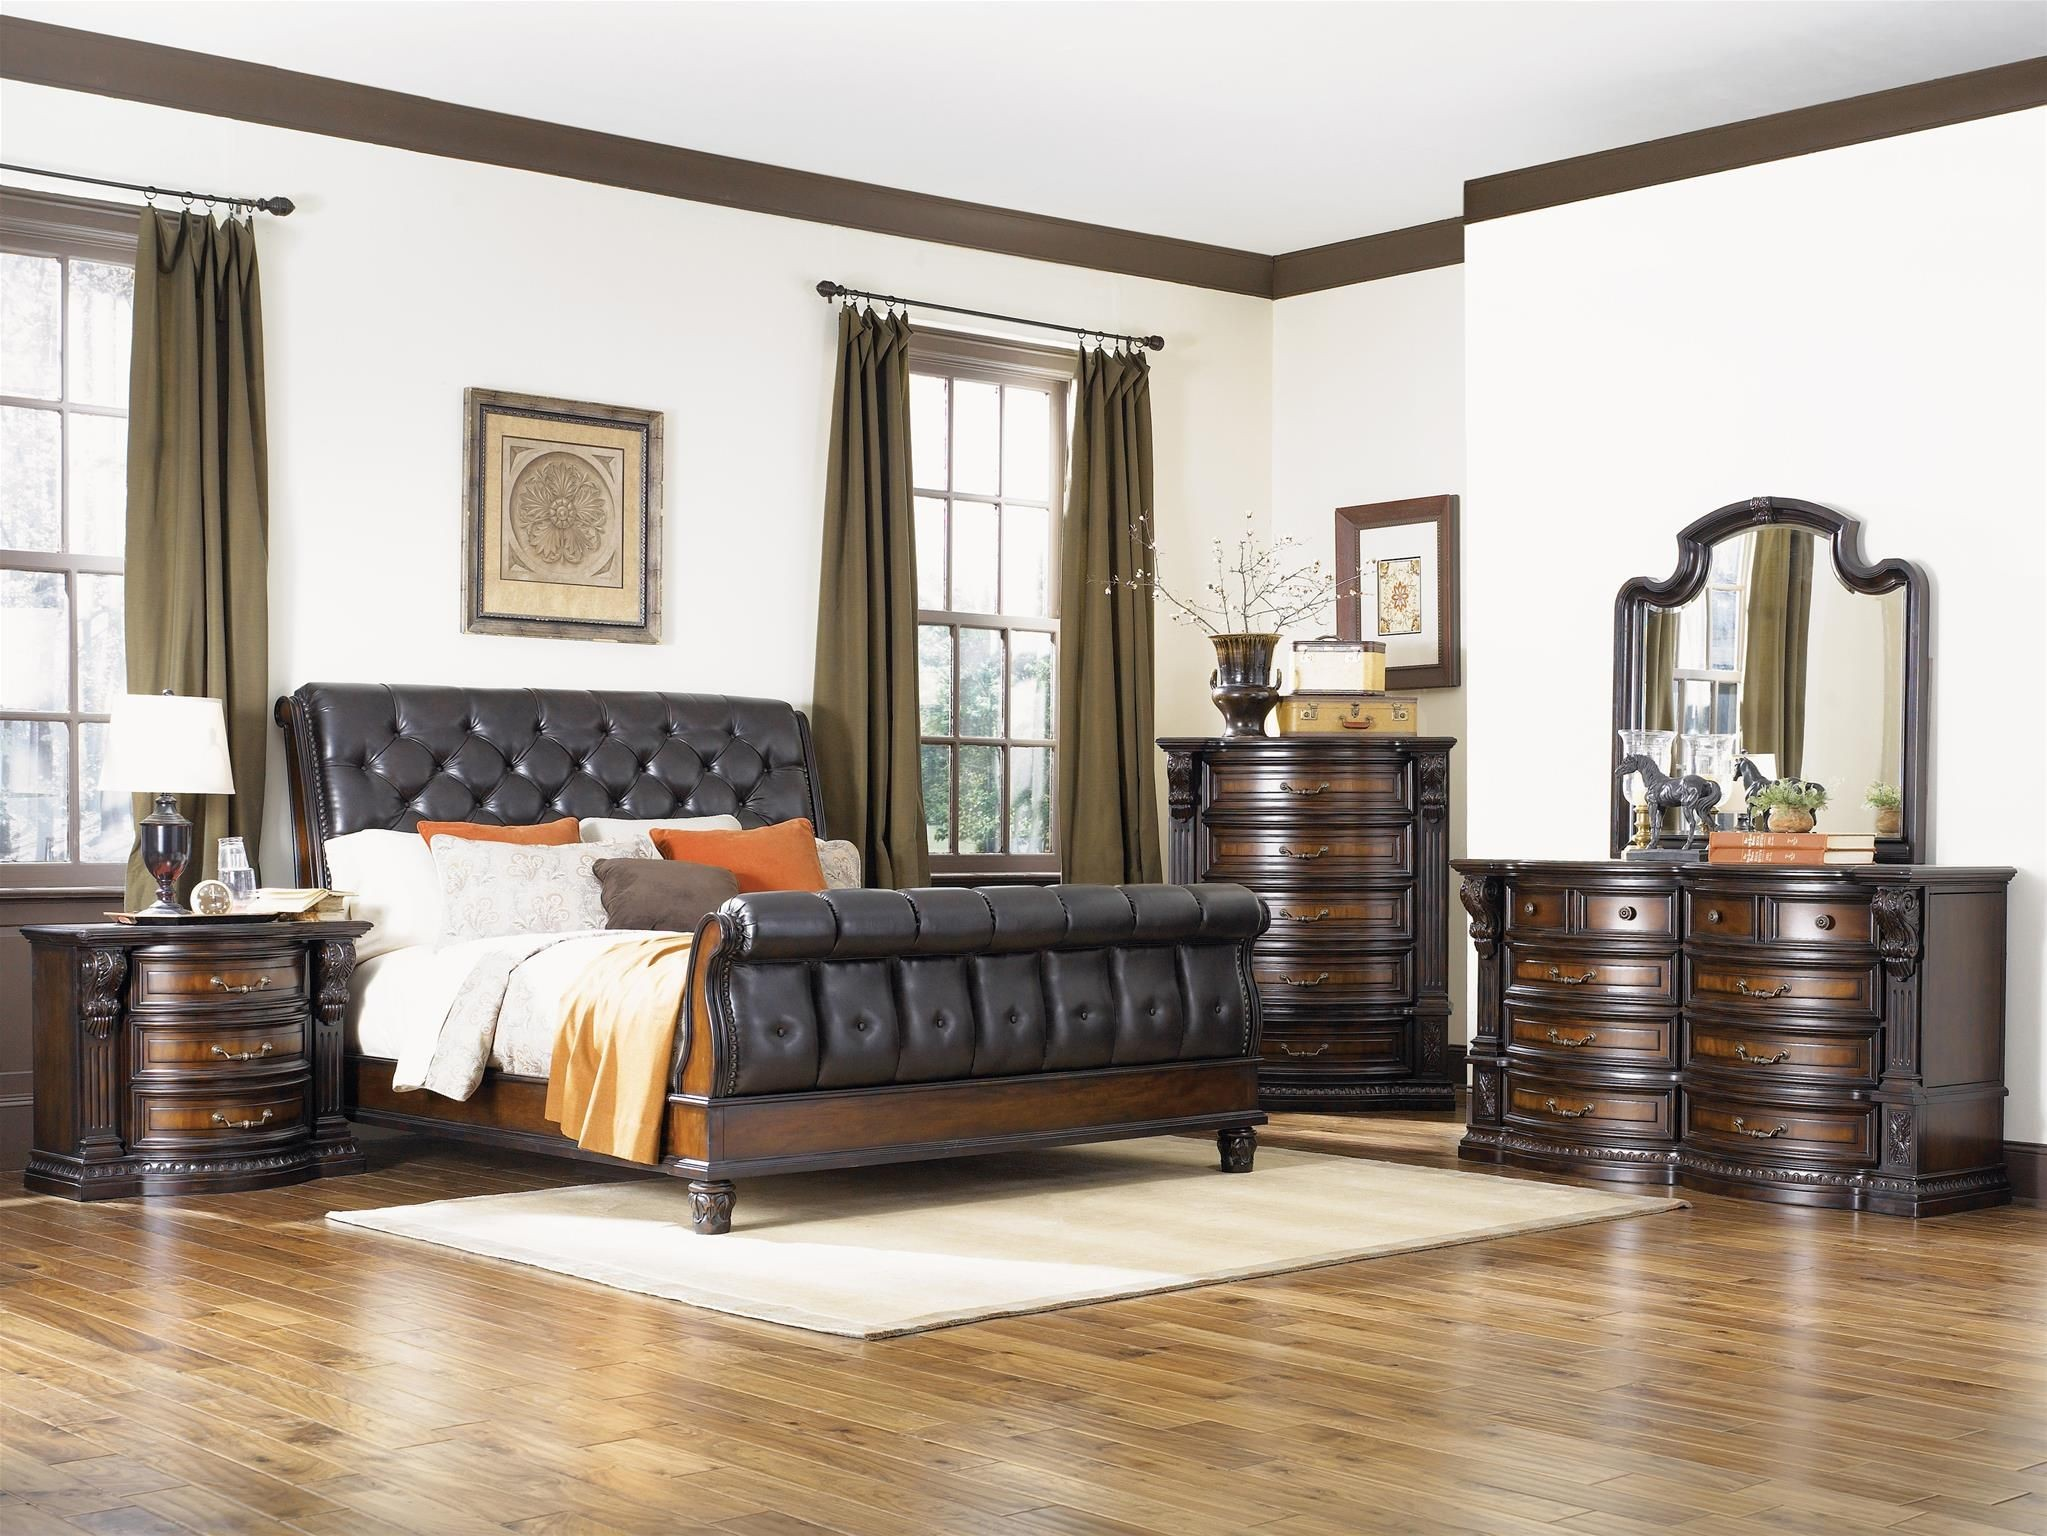 Grand estates cinnamon sleigh bedroom set from fairmont for Grand bedroom designs